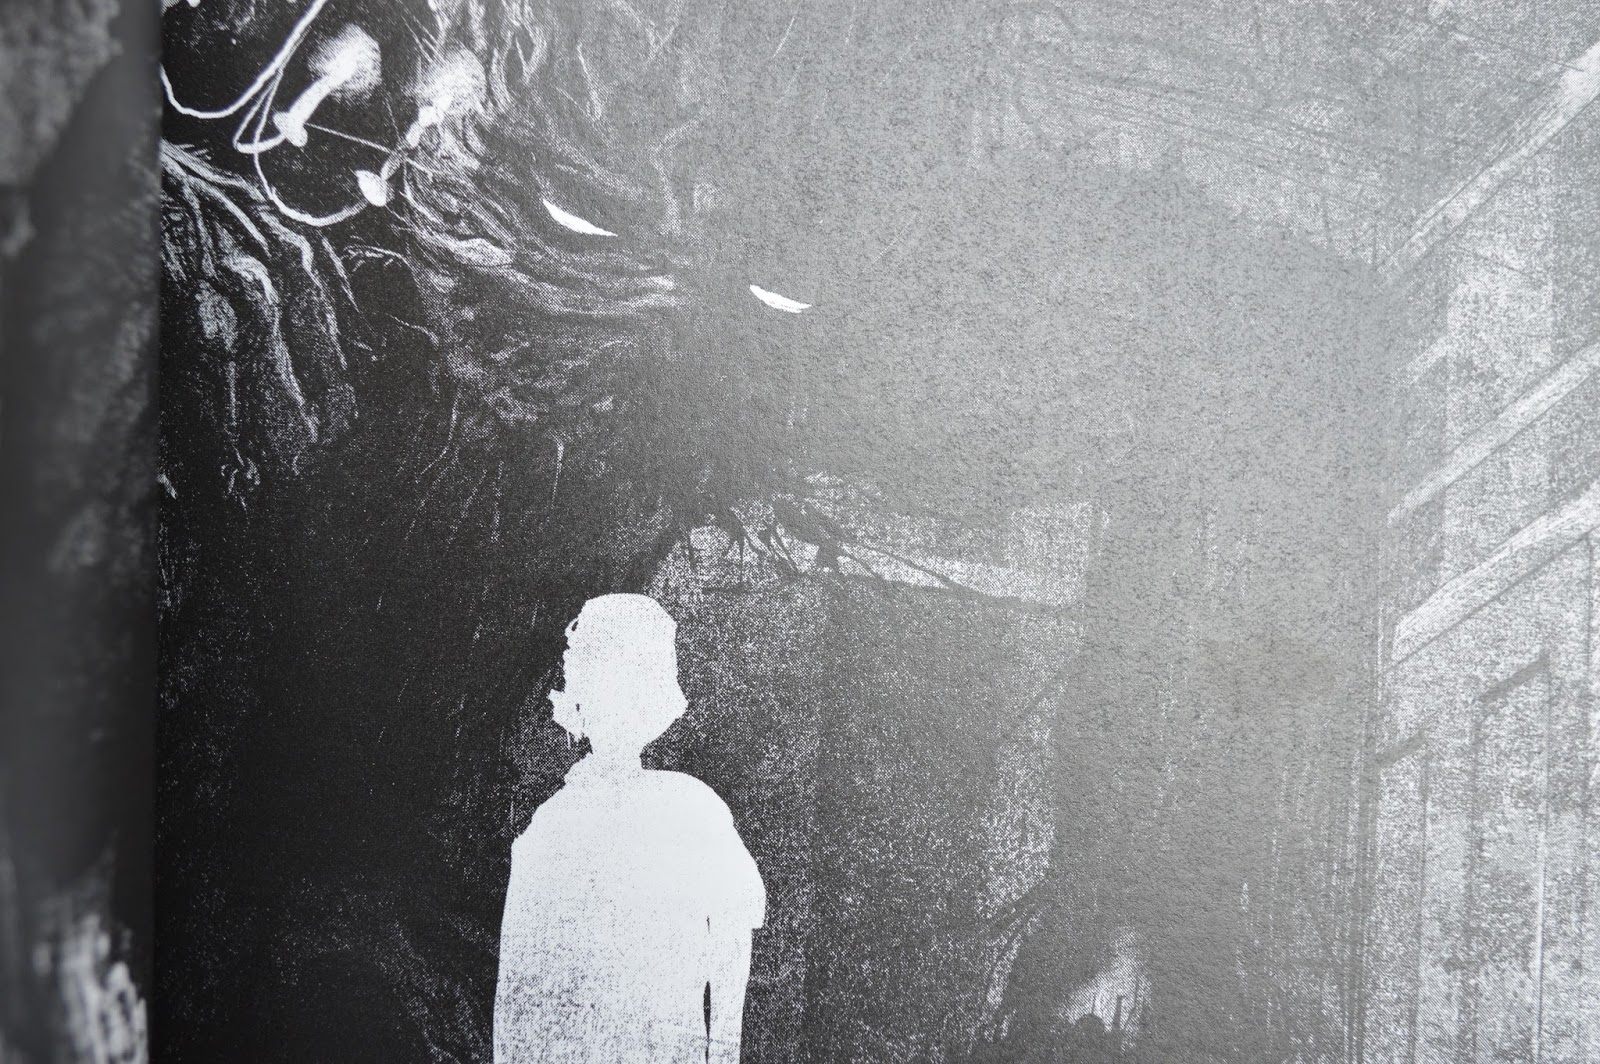 Jim Kay, illustrated, YA Fiction, cancer, death, Patrick Ness, Siobhan Dowd, A Monster Calls, pictures, inside, review, photograph, book, graphic novel, grief, bereavement, yew tree